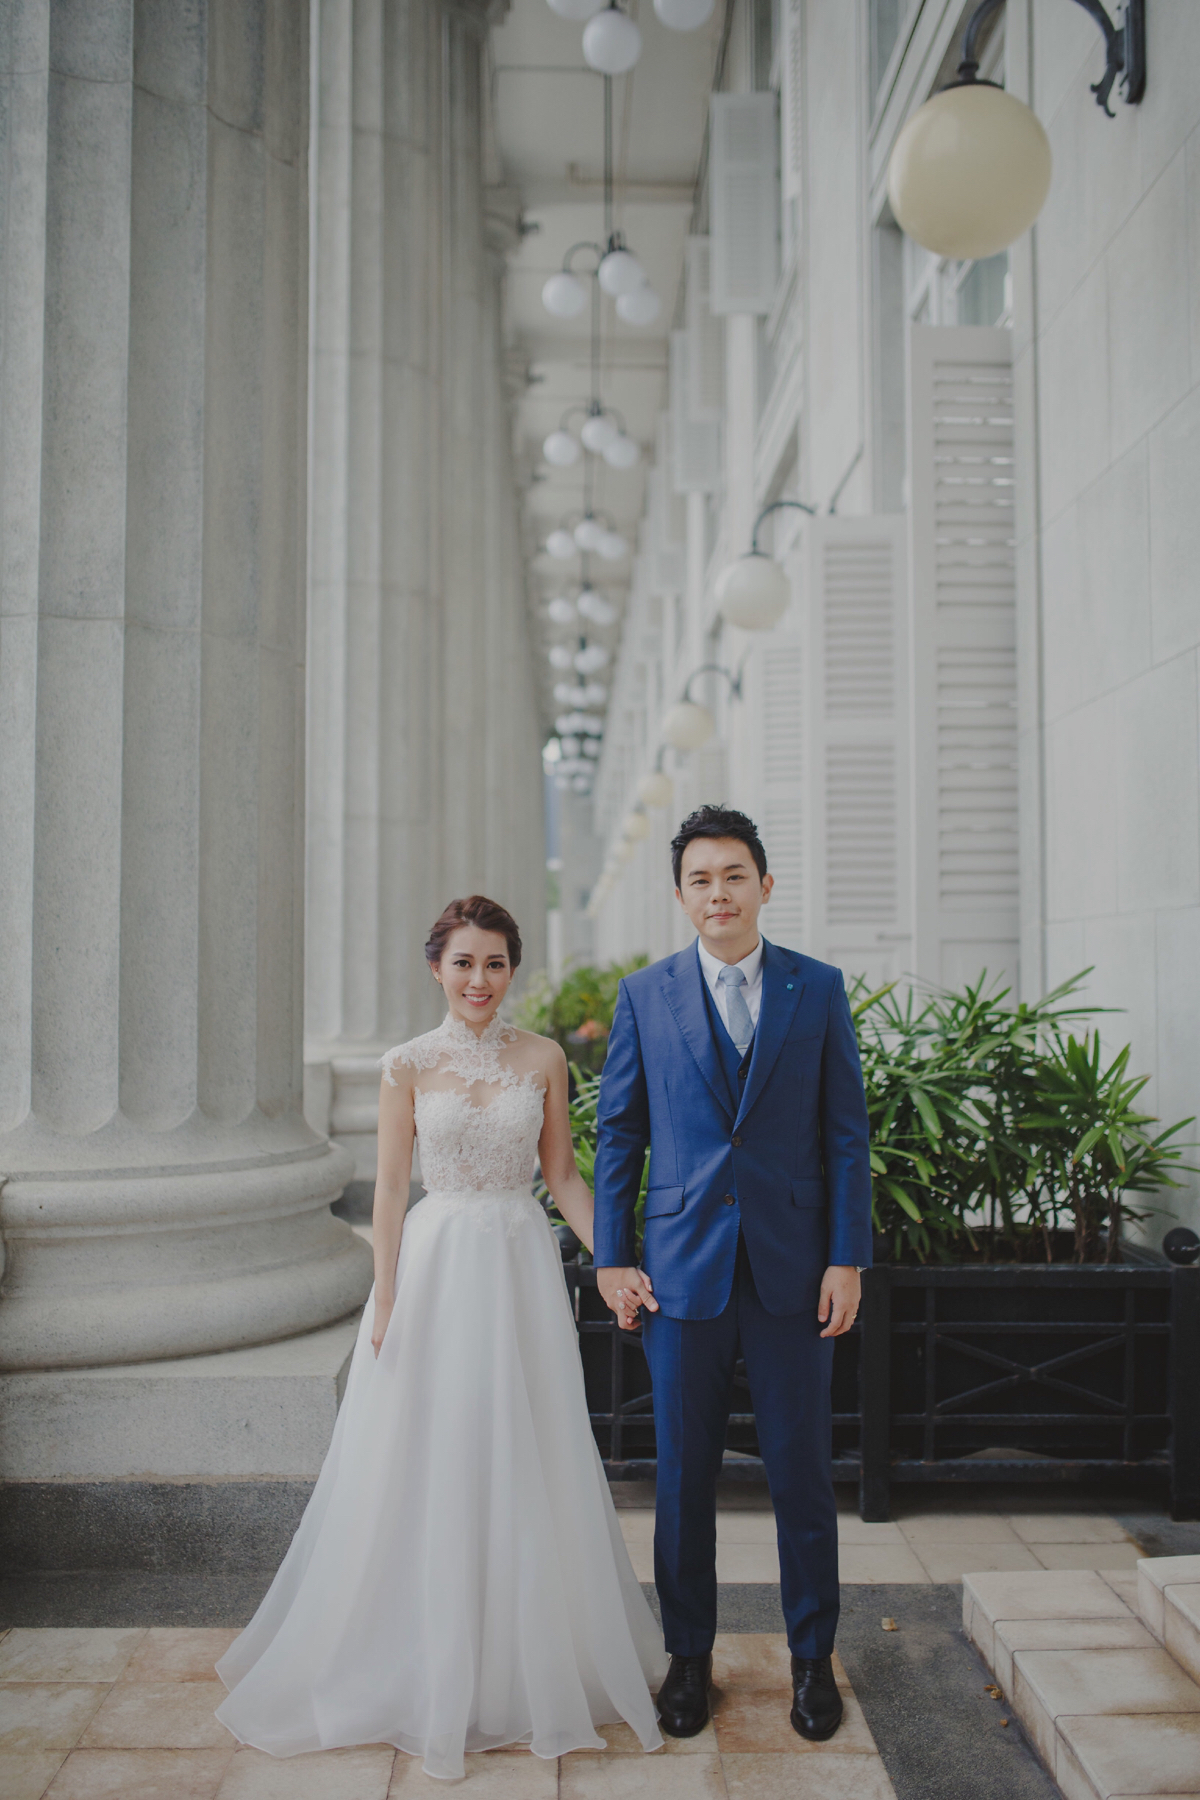 Junxi + How Kiat's Wedding Day  (Photographed by Adrian Seetoh Photography)